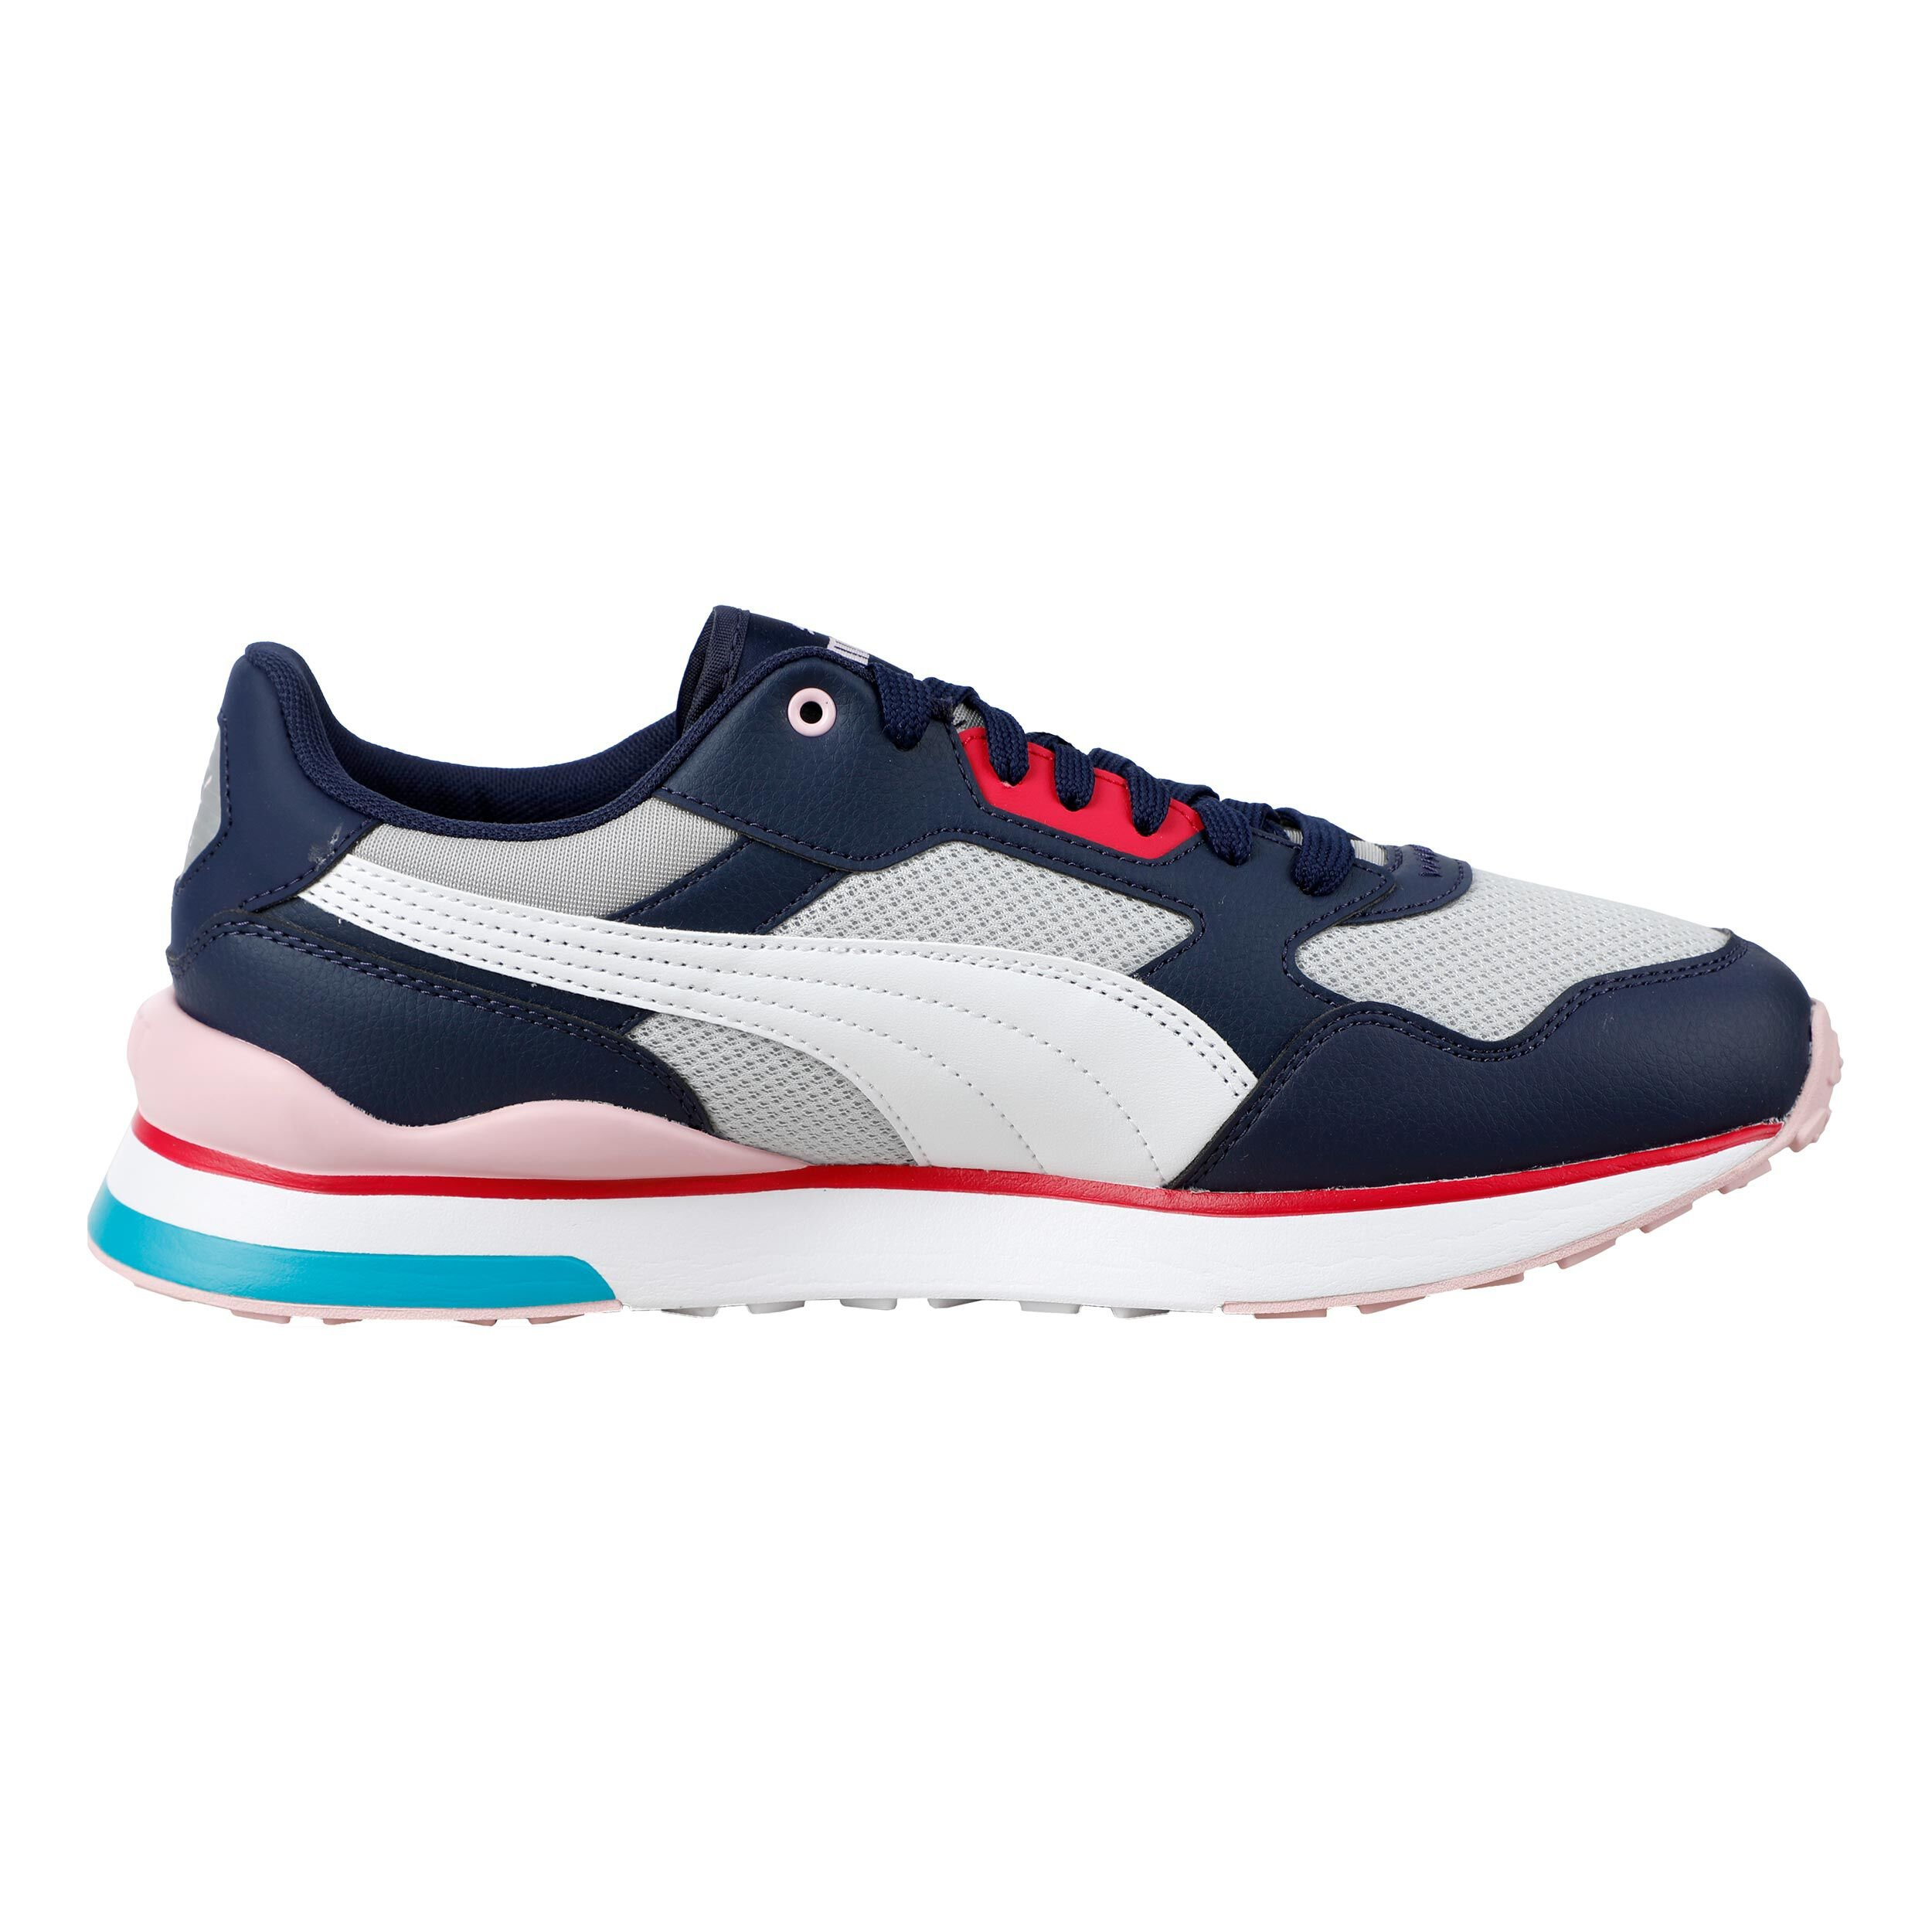 Buy Tennis shoes from Puma online | Tennis-Point